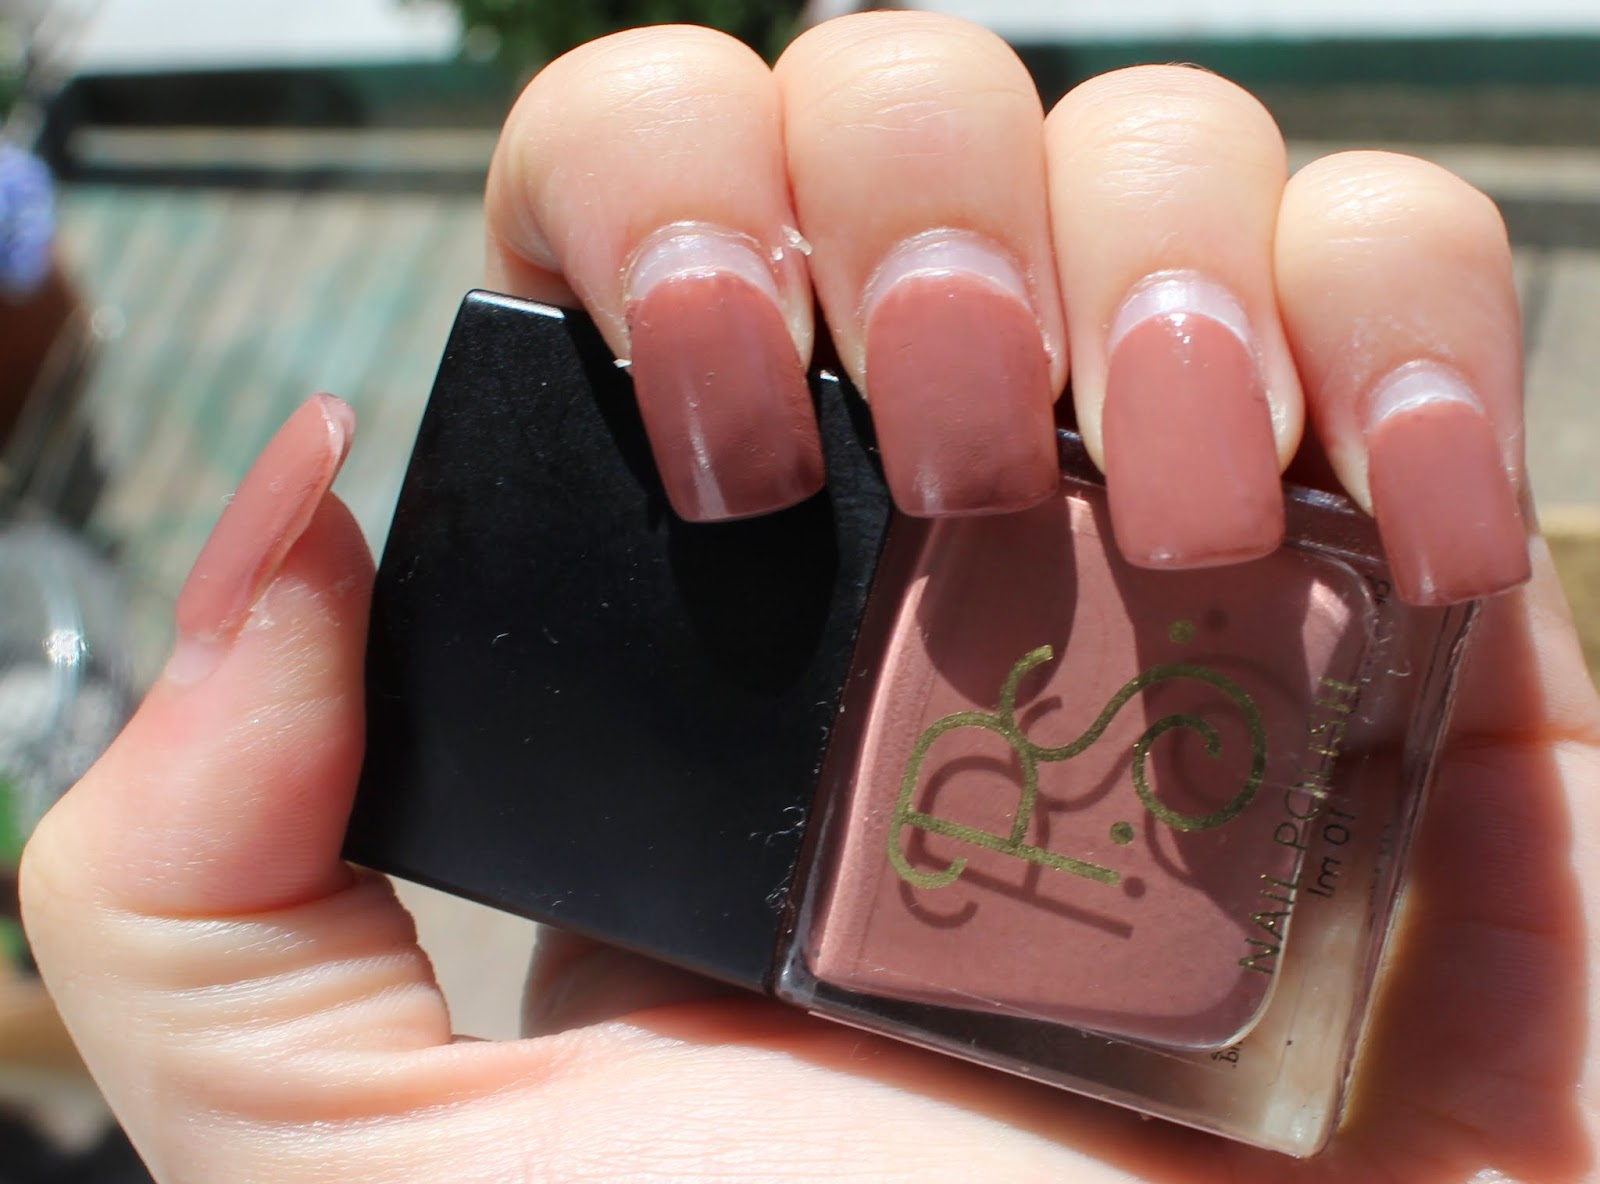 The Nail Polishes Don T Have Names But I Would Describe This Colour As A Brown My Boyfriend On Other Hand Describes It Bacon